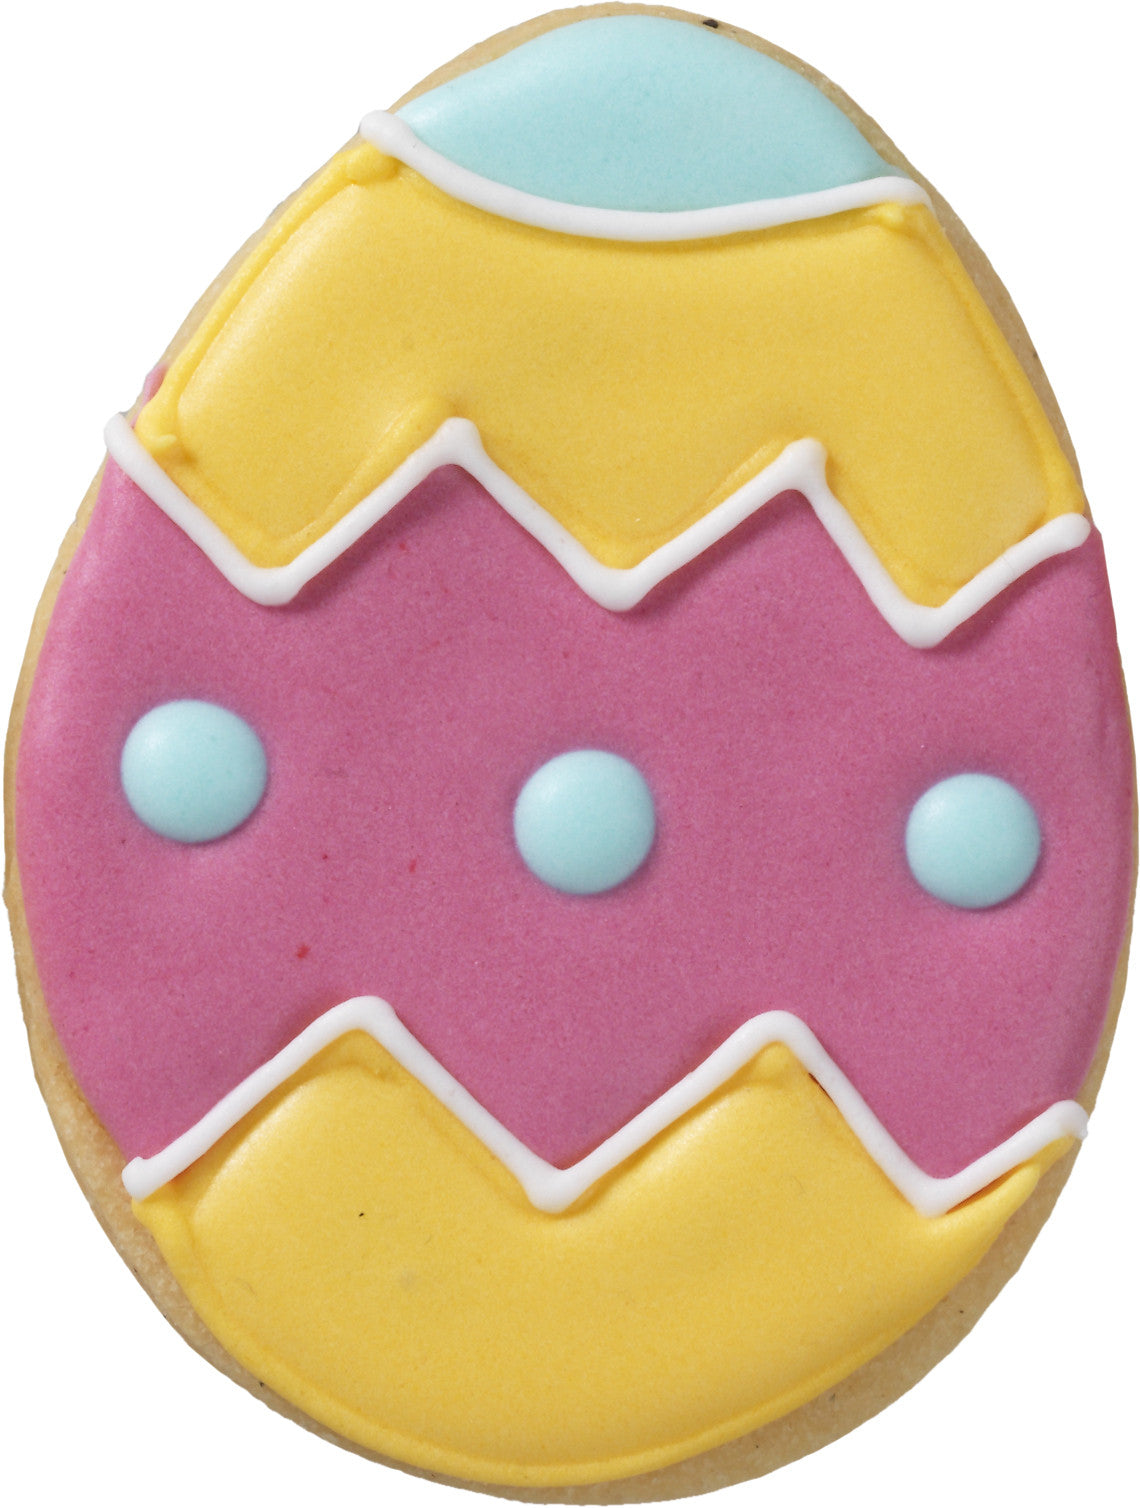 Easter Egg 8cm With Internal Detail 1 Cookie Cutter-Cookie Cutter Shop Australia